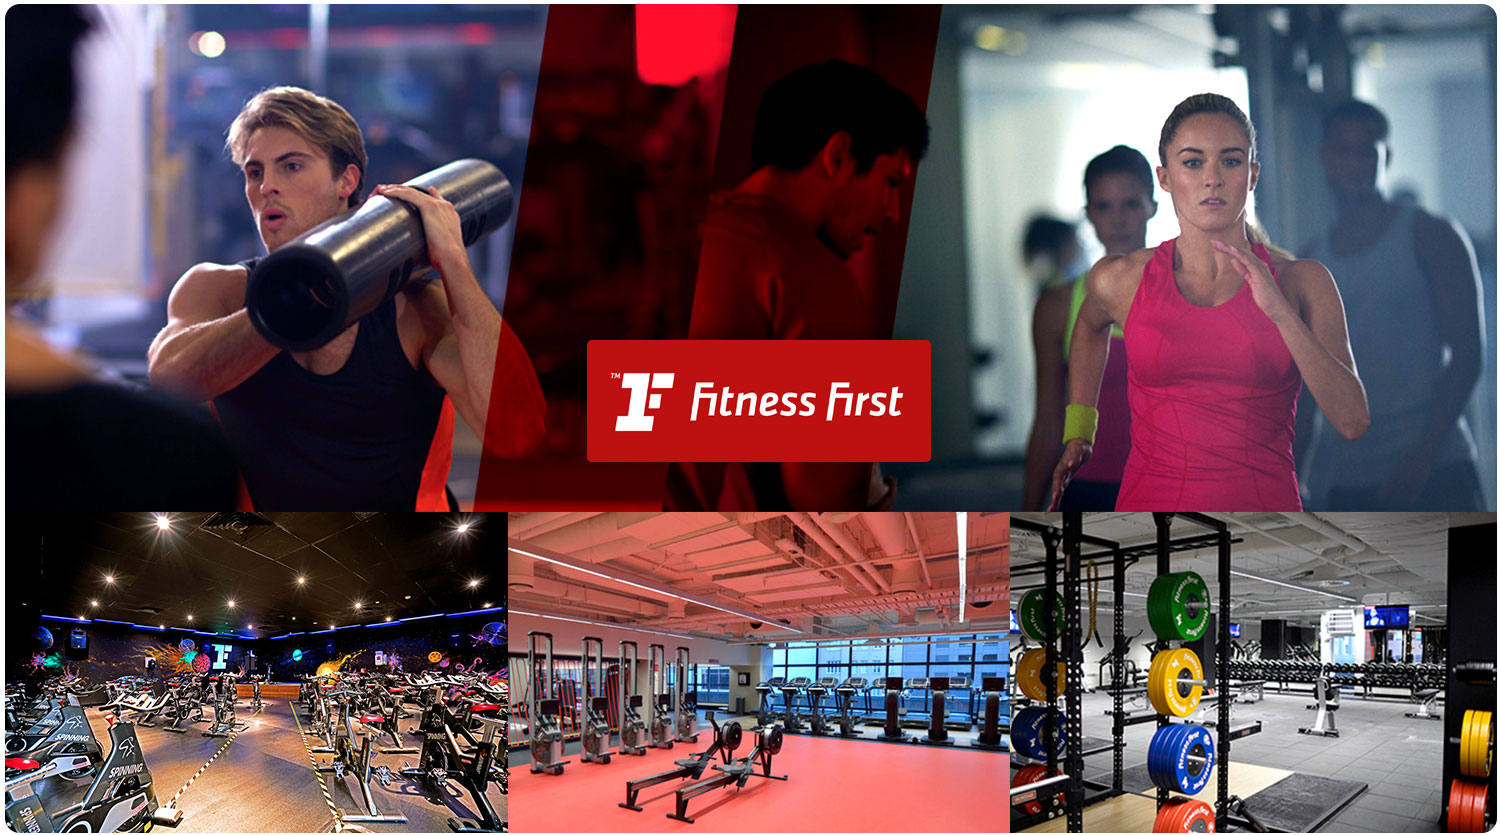 Start your Fitness Journey with Fitness First with only $9.95 for 1 week at Fitness First Melbourne Central. Experience our first class gym and freestyle classes inc. Yoga, Pilates, Zumba, Les Mills and more. Take the first step with Fitness First Melbourne Central.